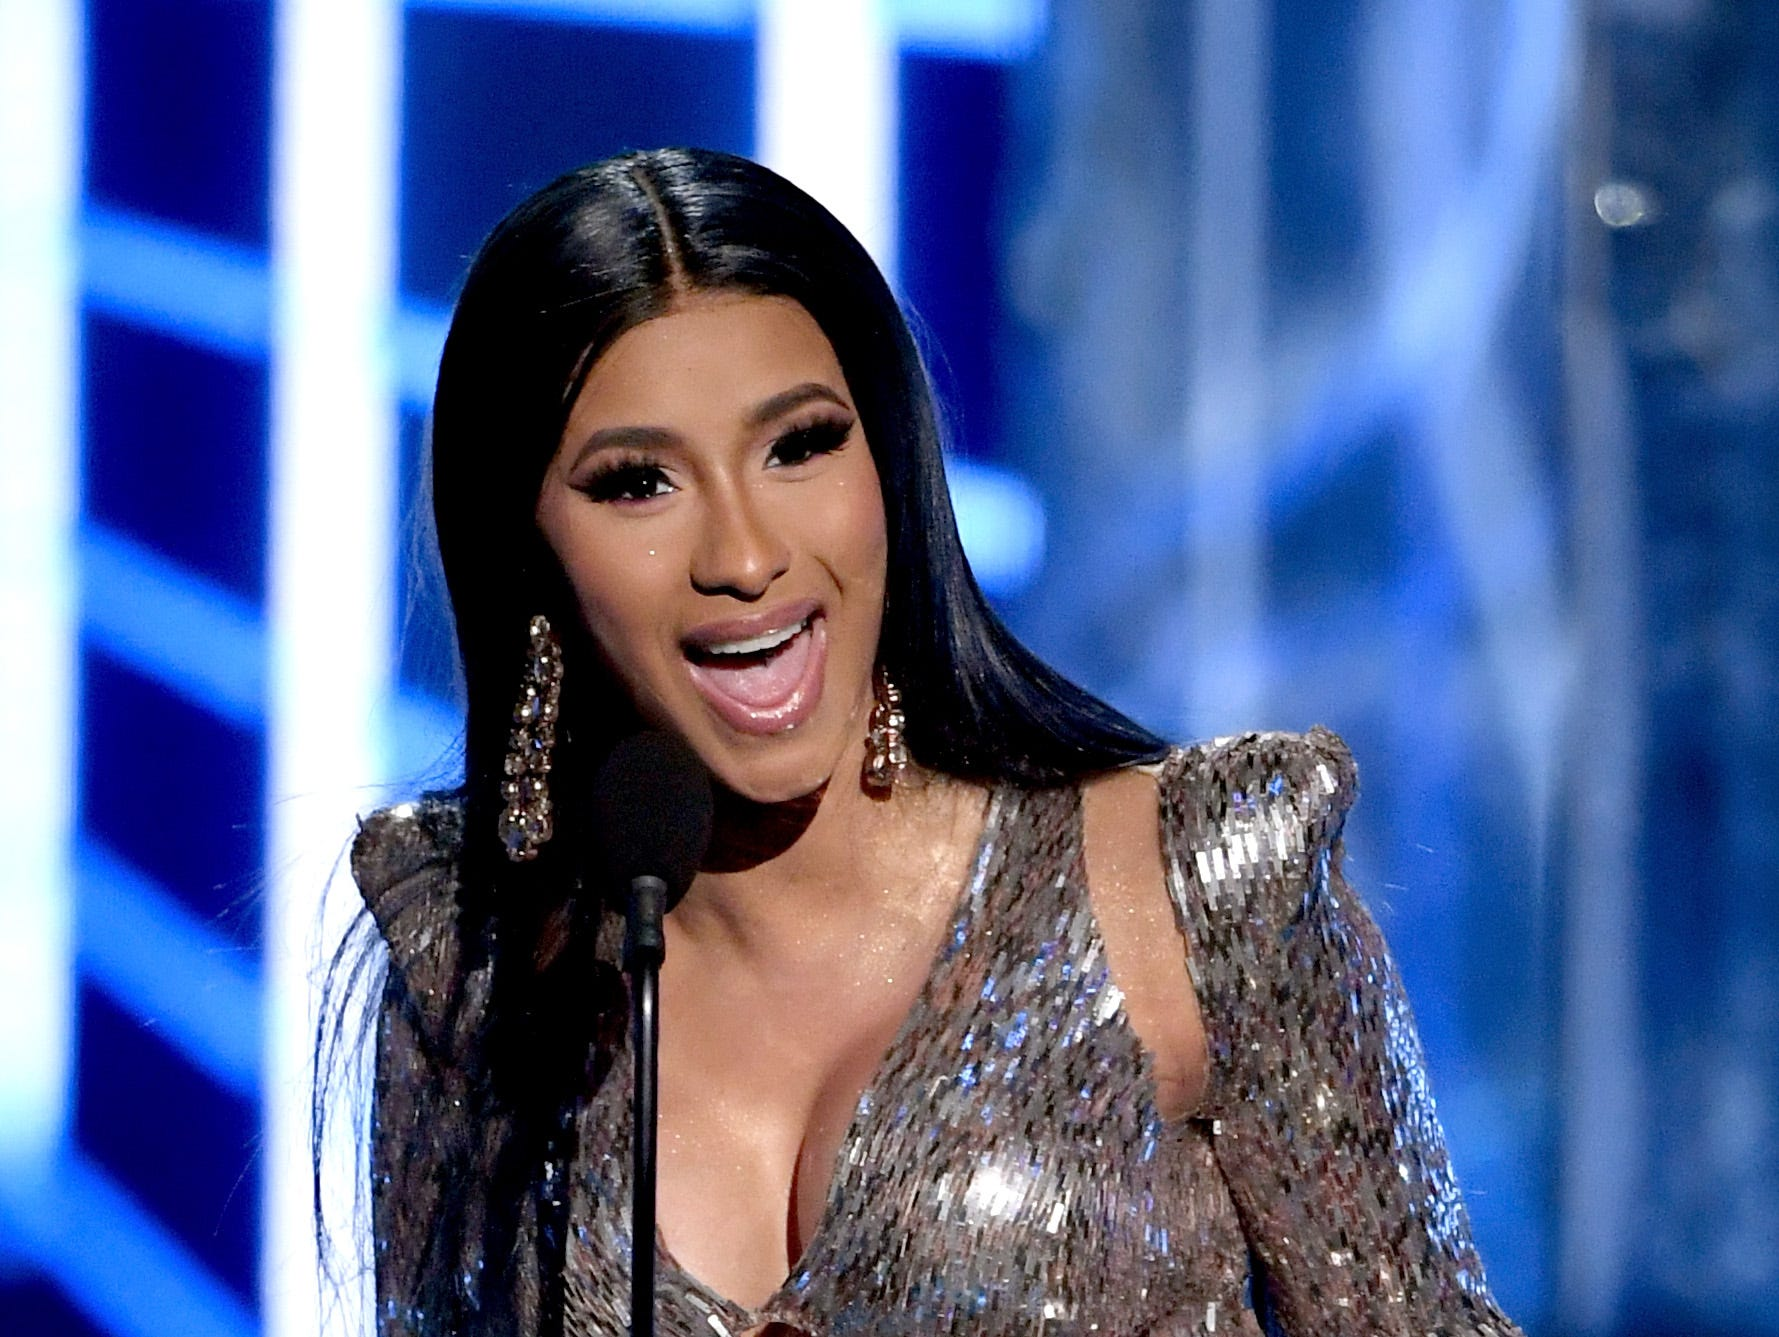 """Cardi B accepts Top Rap Song for """"I Like It"""" onstage during the 2019 Billboard Music Awards at MGM Grand Garden Arena on May 1, 2019 in Las Vegas, Nevada."""